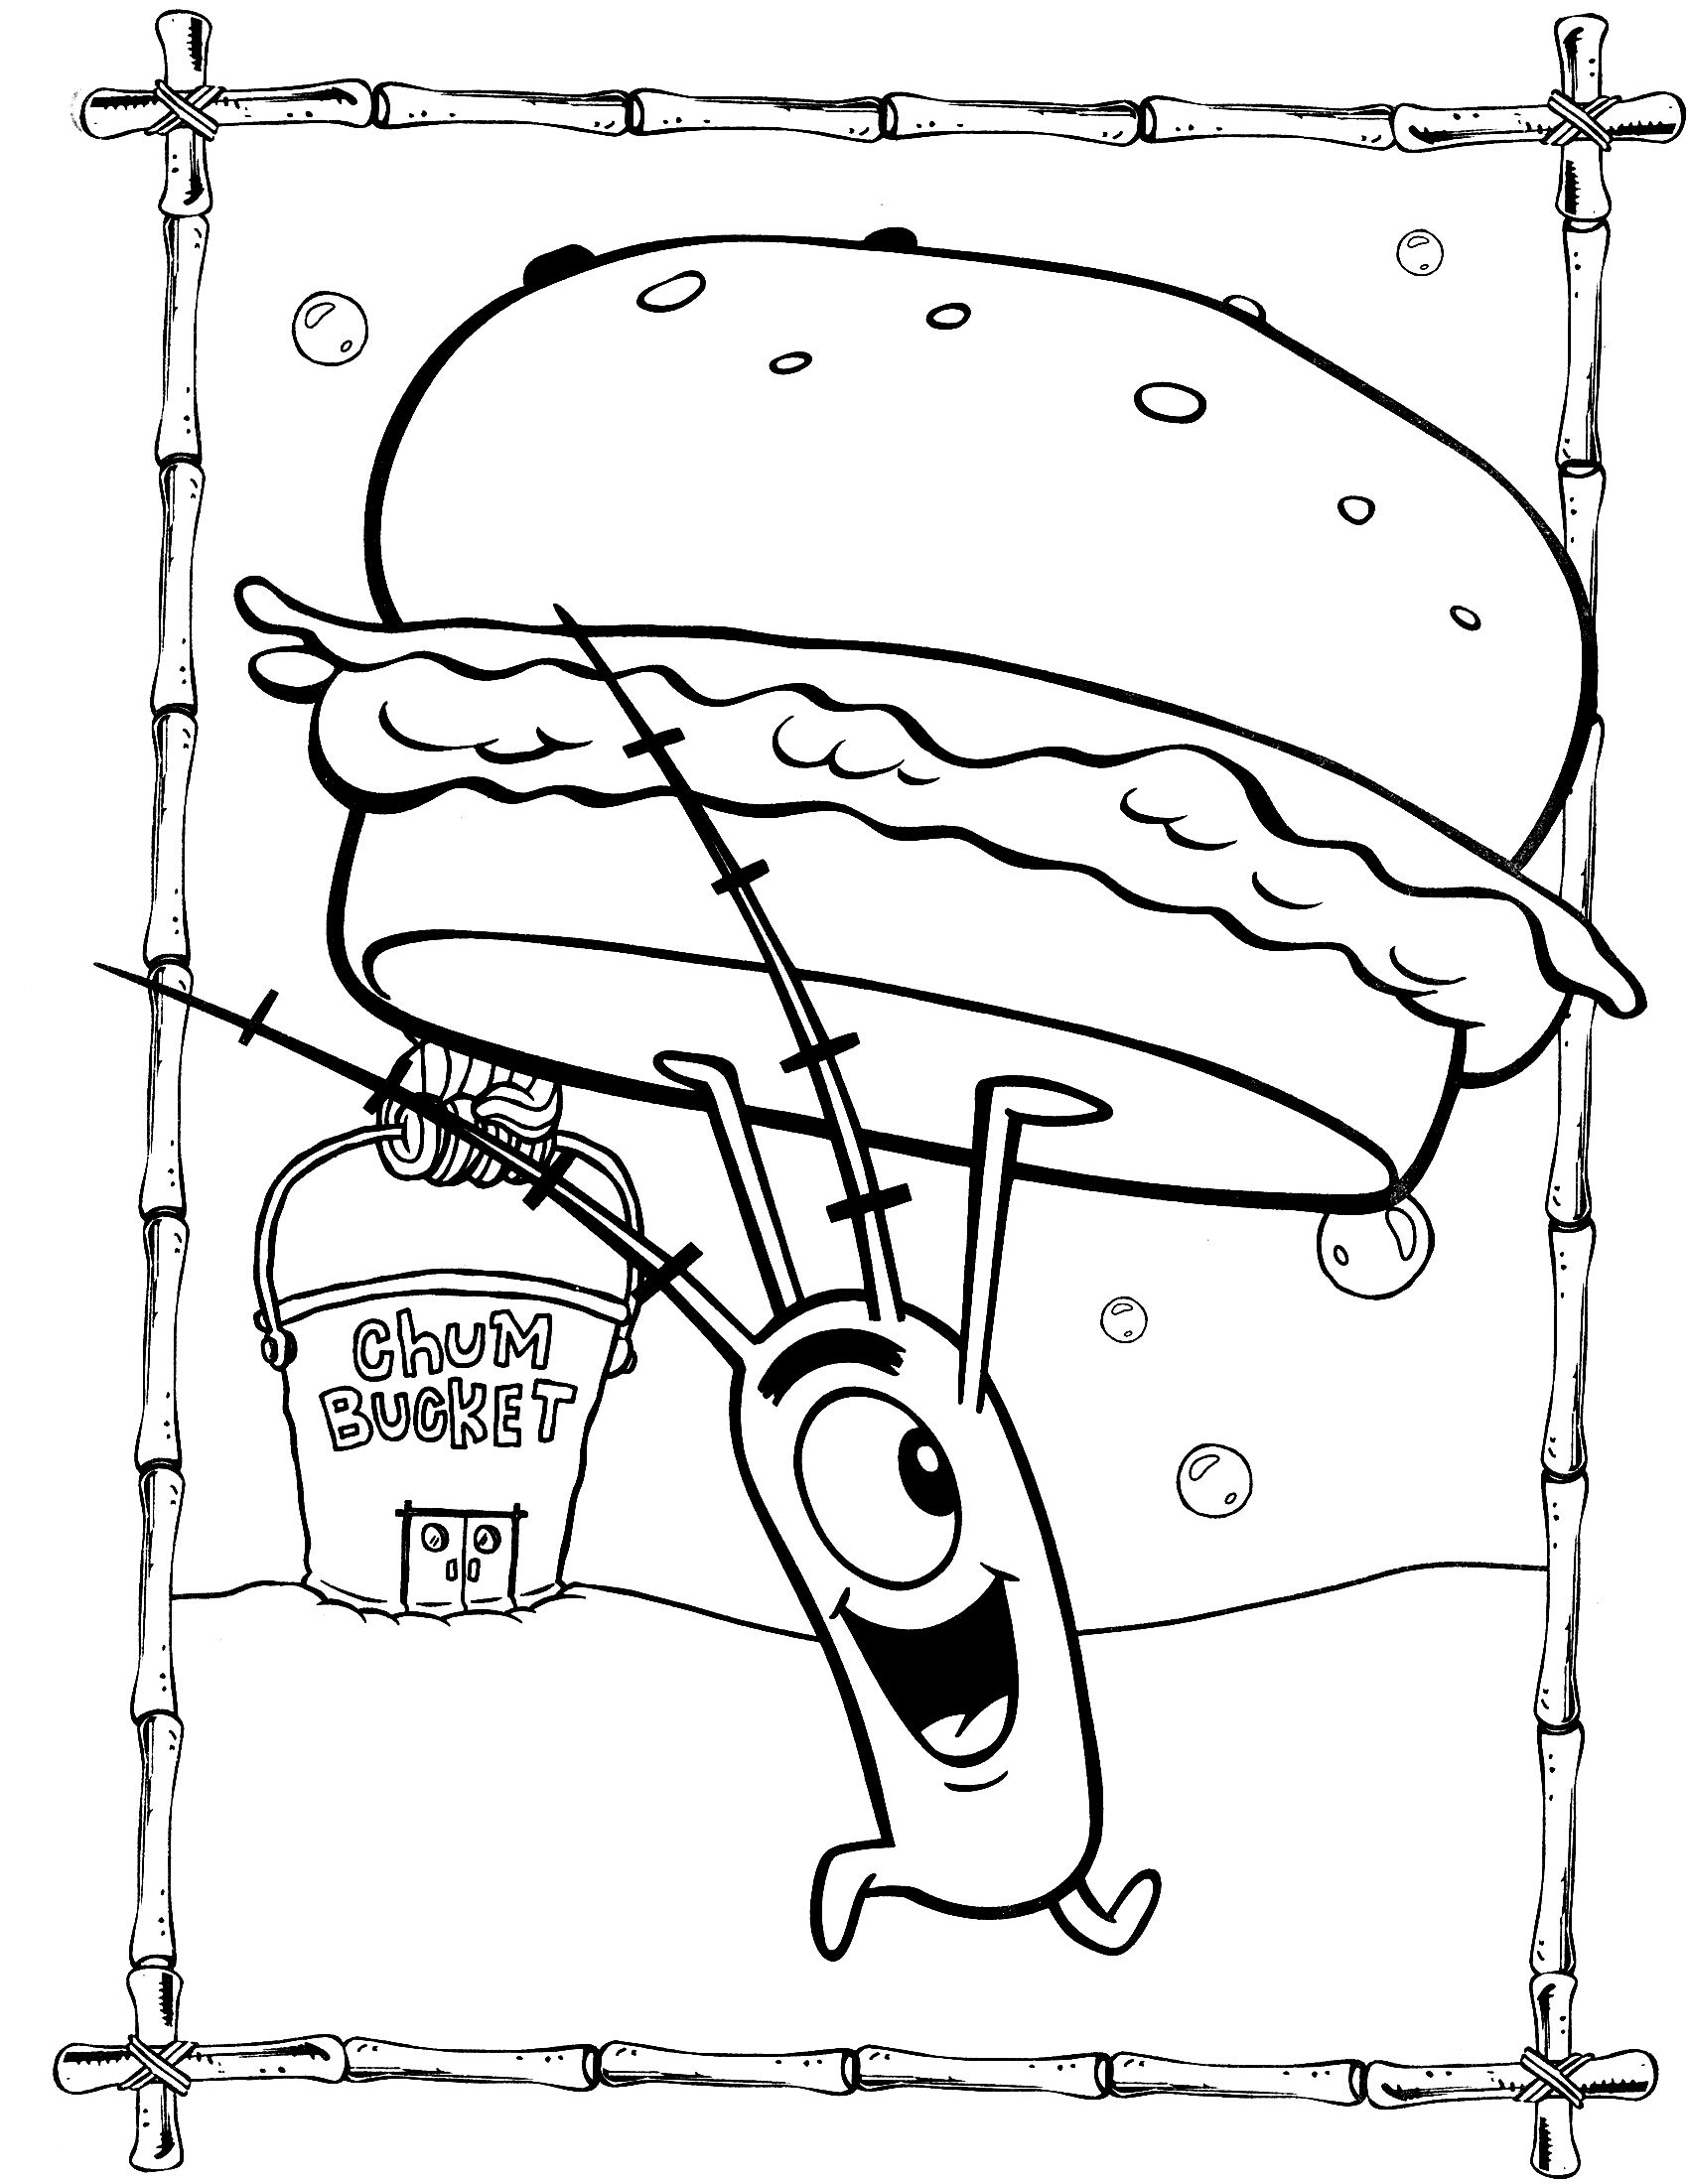 spongebob coloring pages Plankton with Krabby Patty | Kidstuff ...